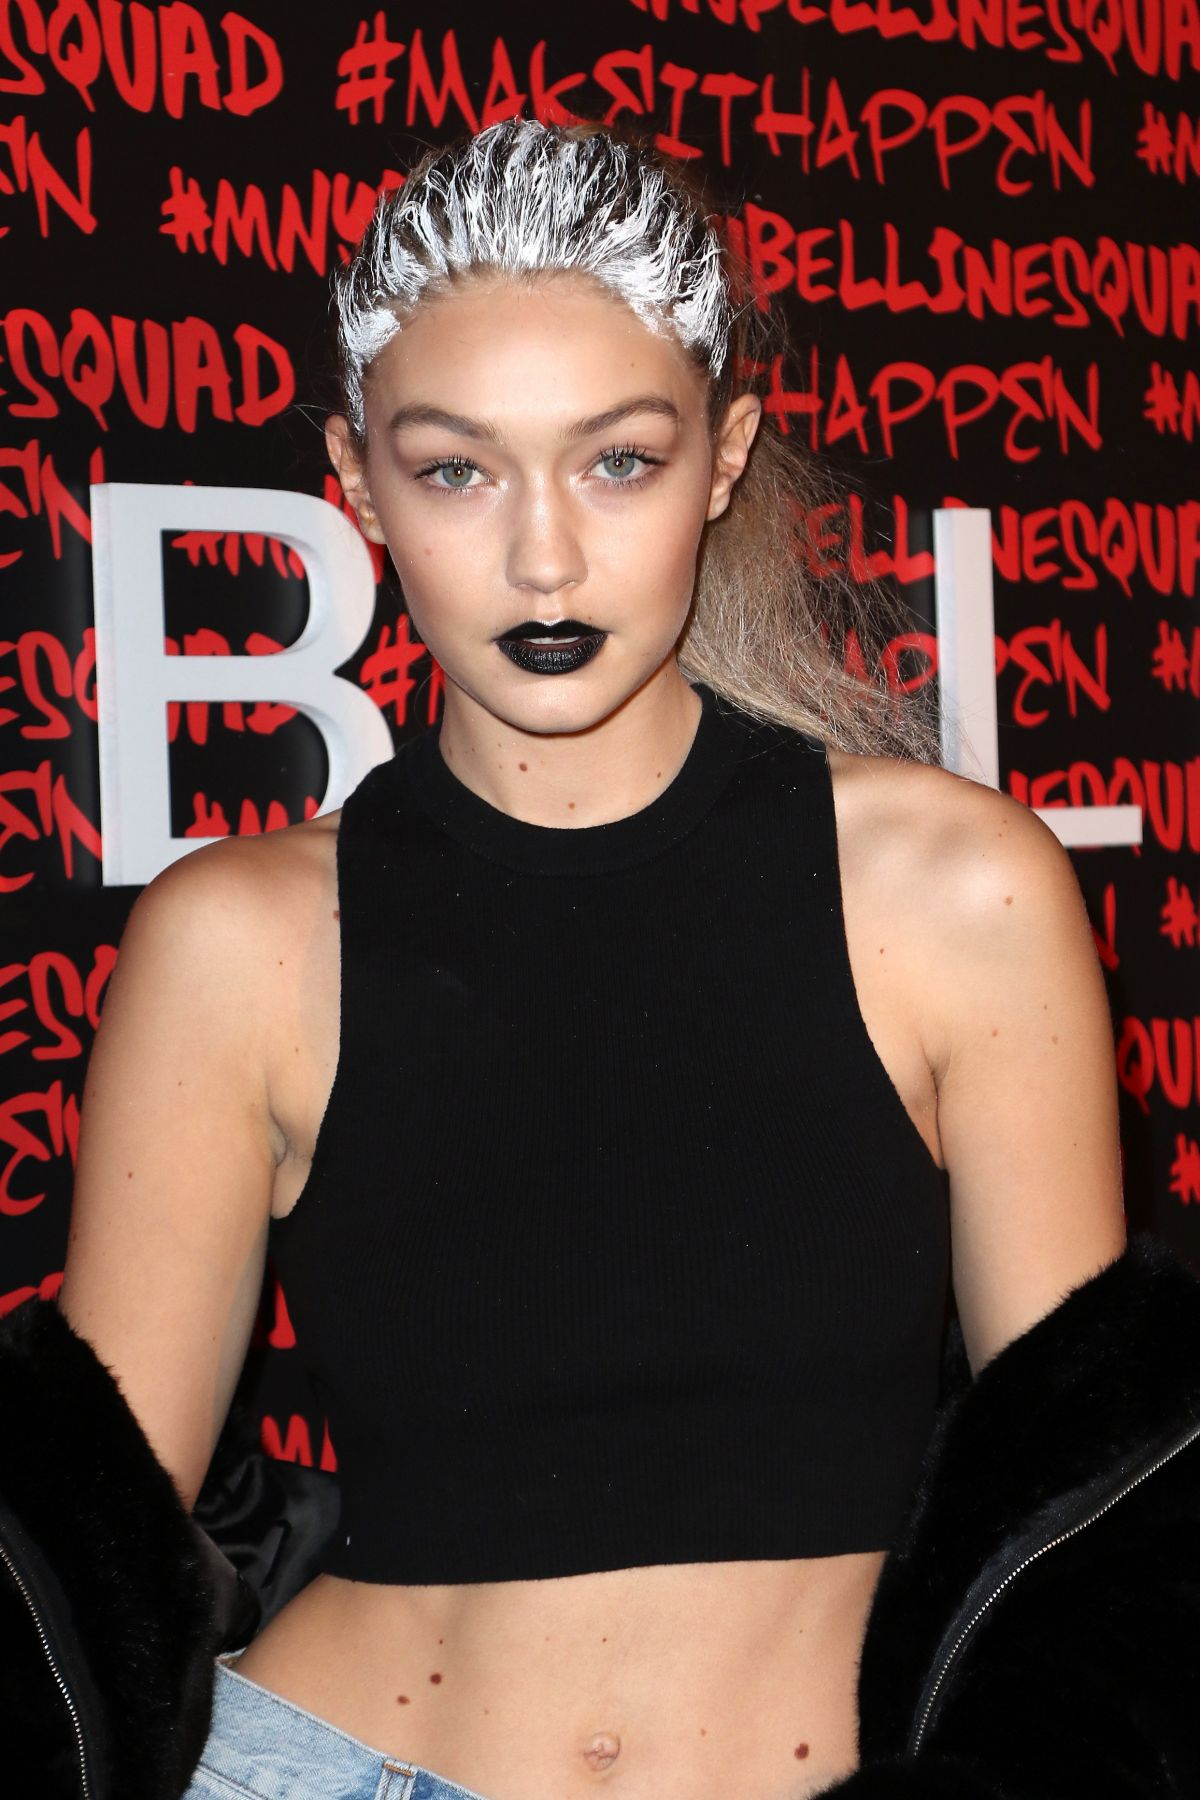 GIGI HADID at Maybelline New York Celebrates Fashion Week 02/12/2016